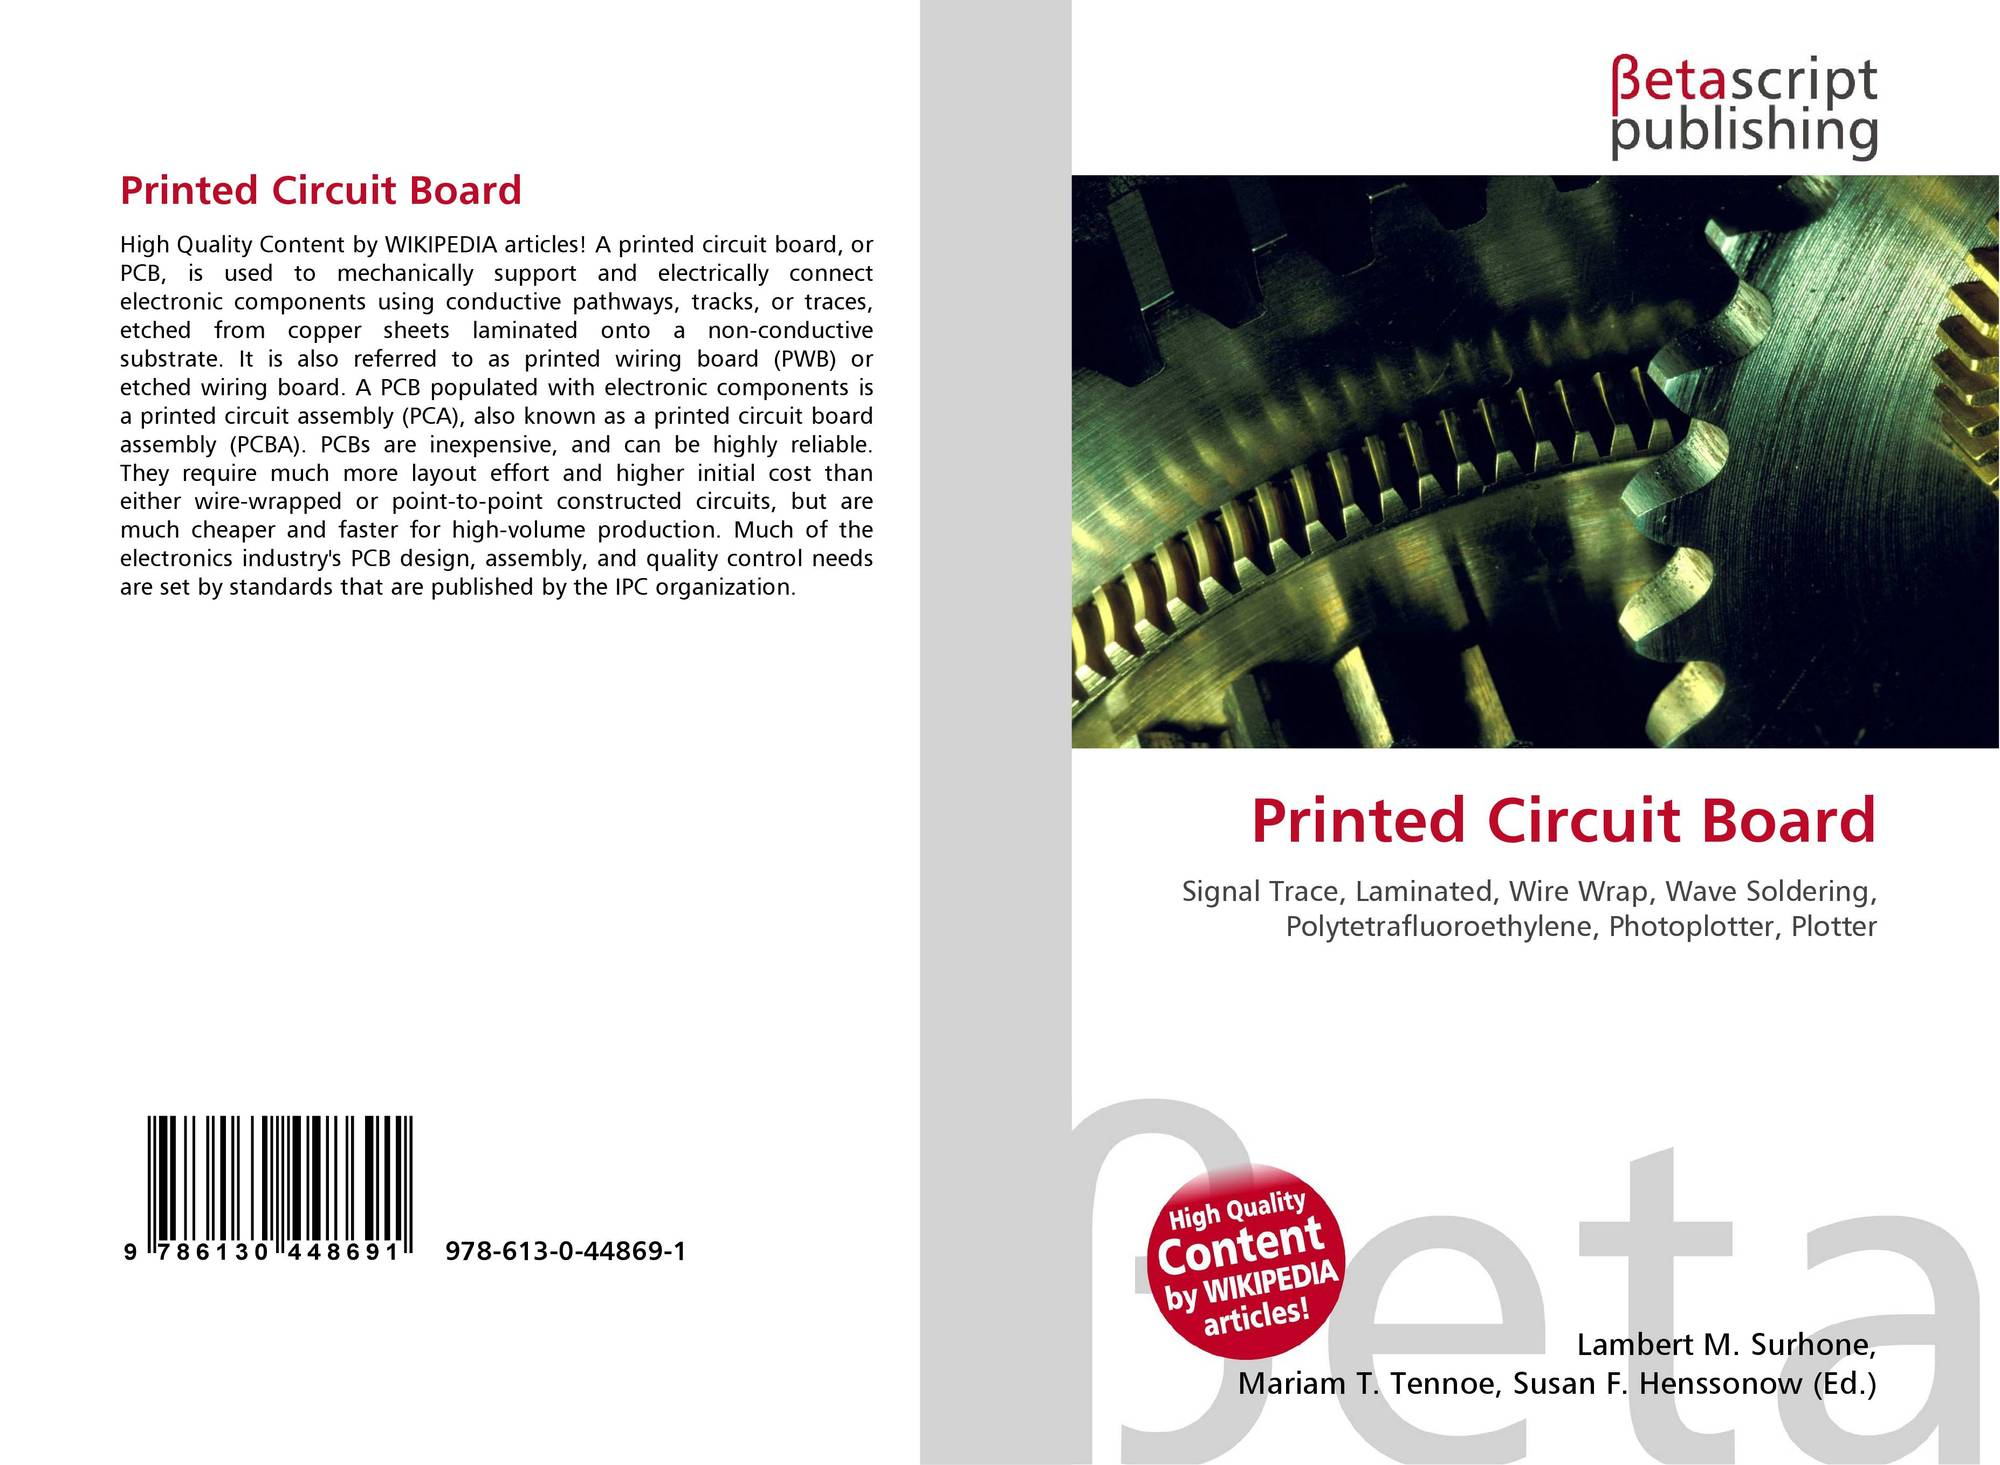 Printed Circuit Board 978 613 0 44869 1 6130448694 9786130448691 Plotter Bookcover Of